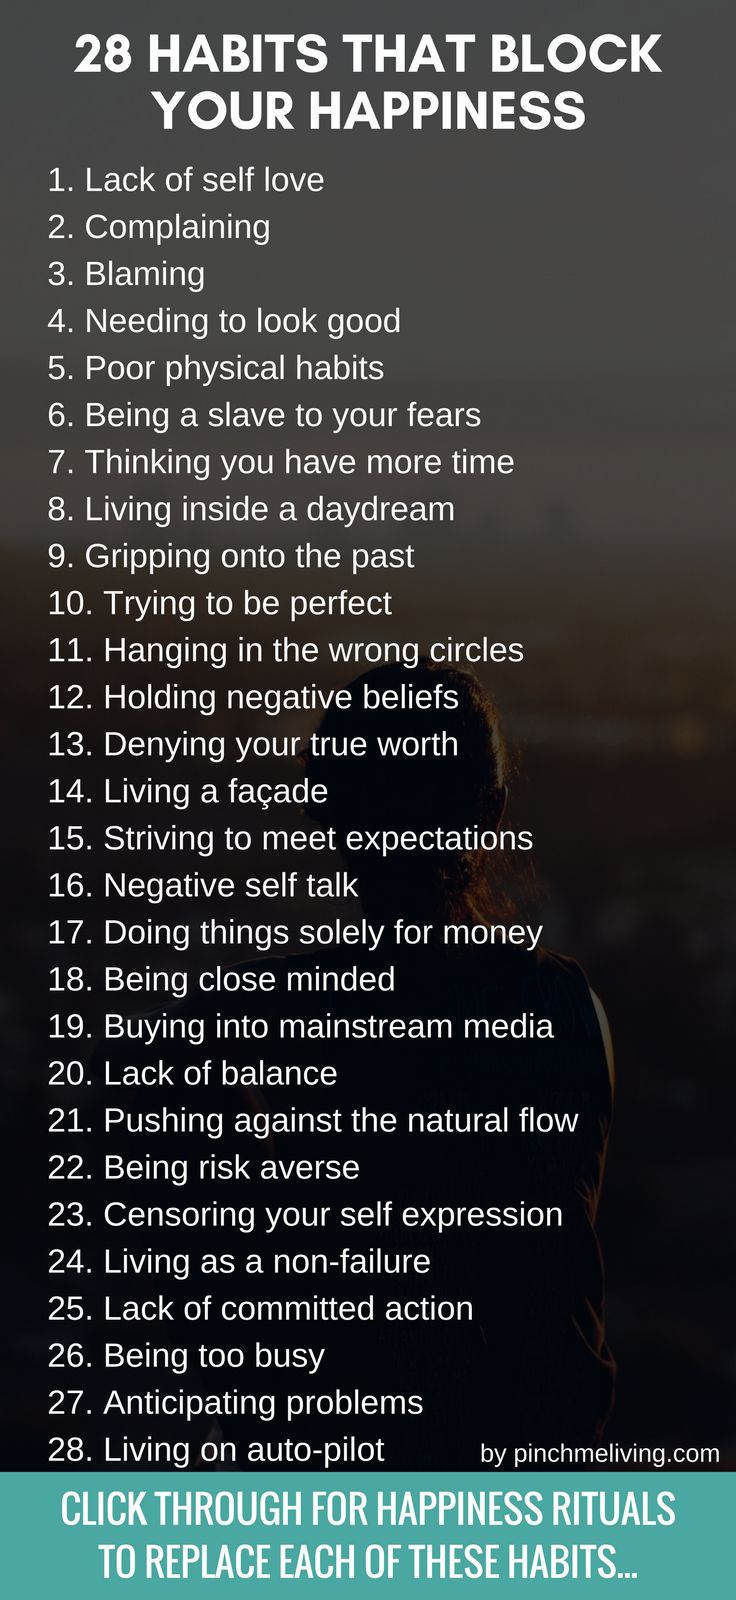 28 Habits that block your happiness & how to let them go. Get the happiness rituals to replace these soul sucking habits. Plus a free pdf guide to download. https://www.pinchmeliving.com/28-habits-that-block-your-happiness/